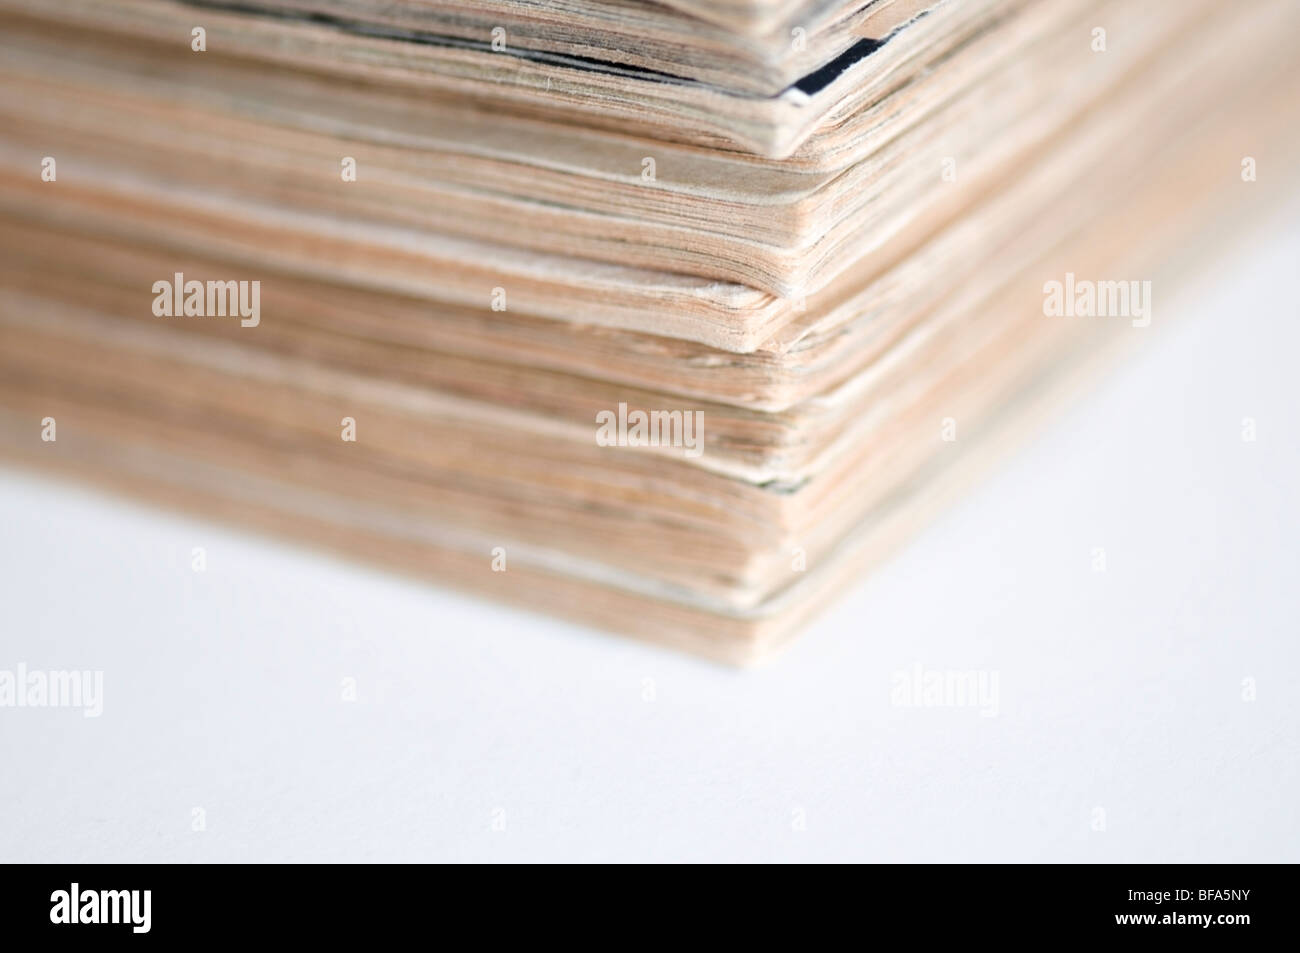 Corner view of piled old, aged, 1960s yellowing magazines copies on white background - Stock Image